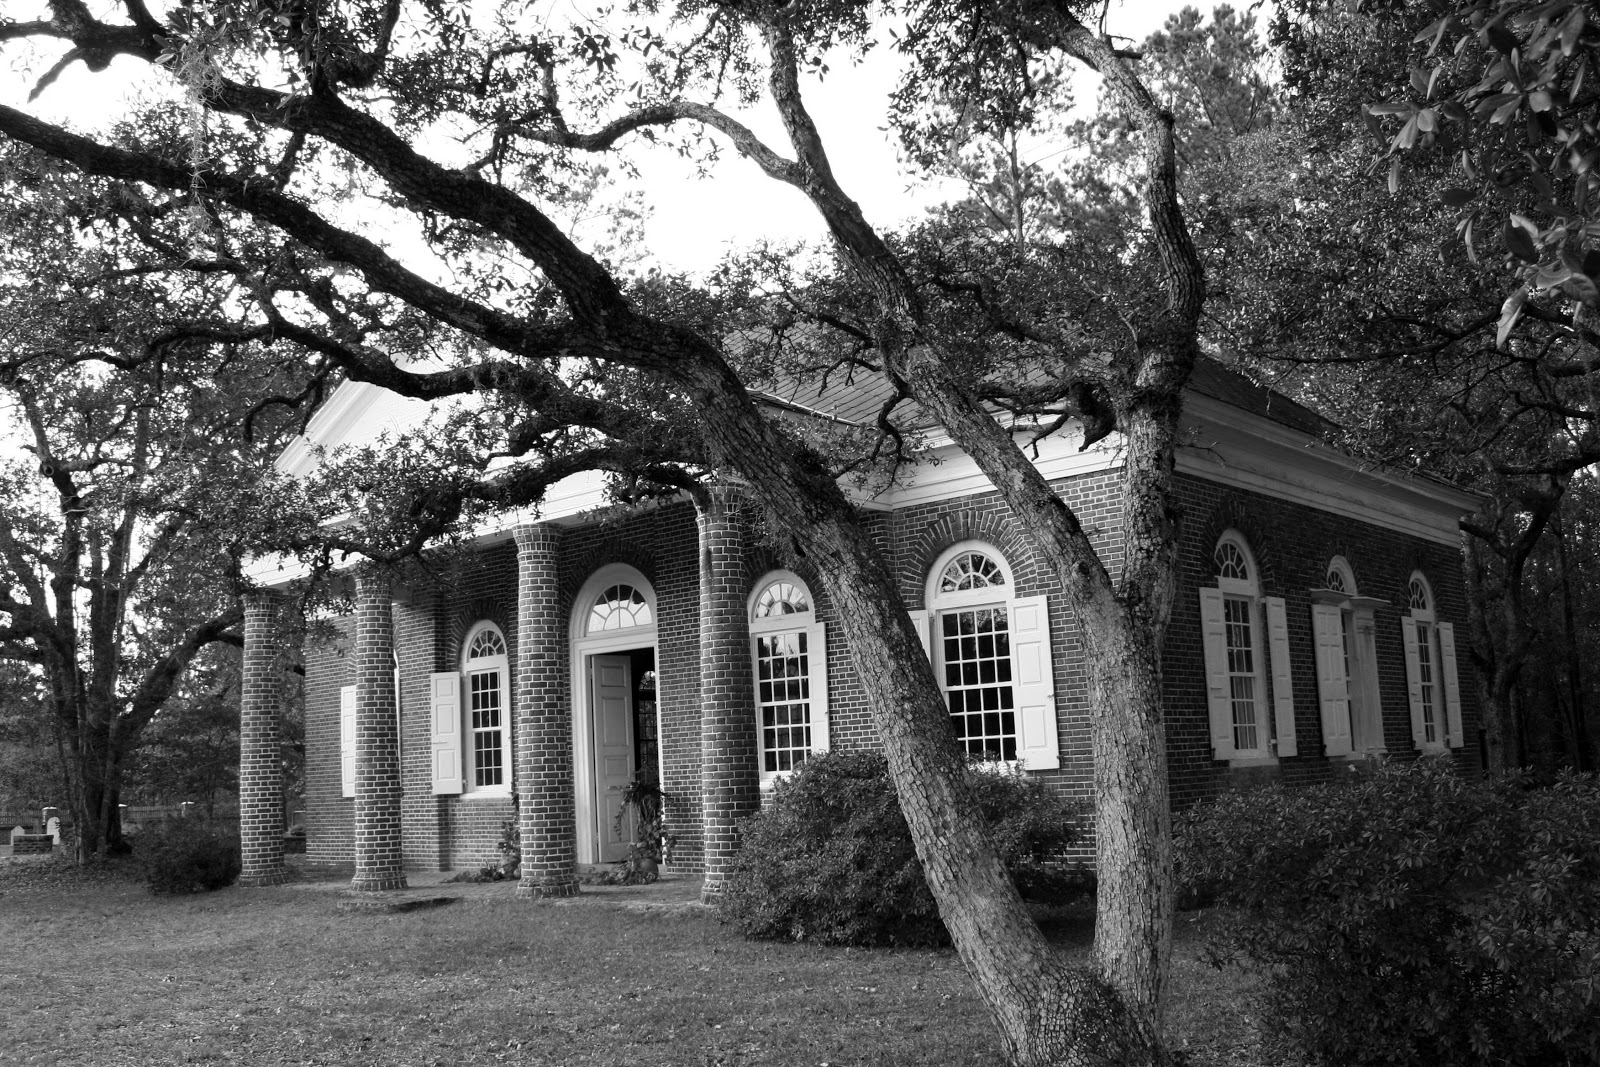 Charming Churches In Fort Mill Sc #1: BC+Angle+BW.jpg